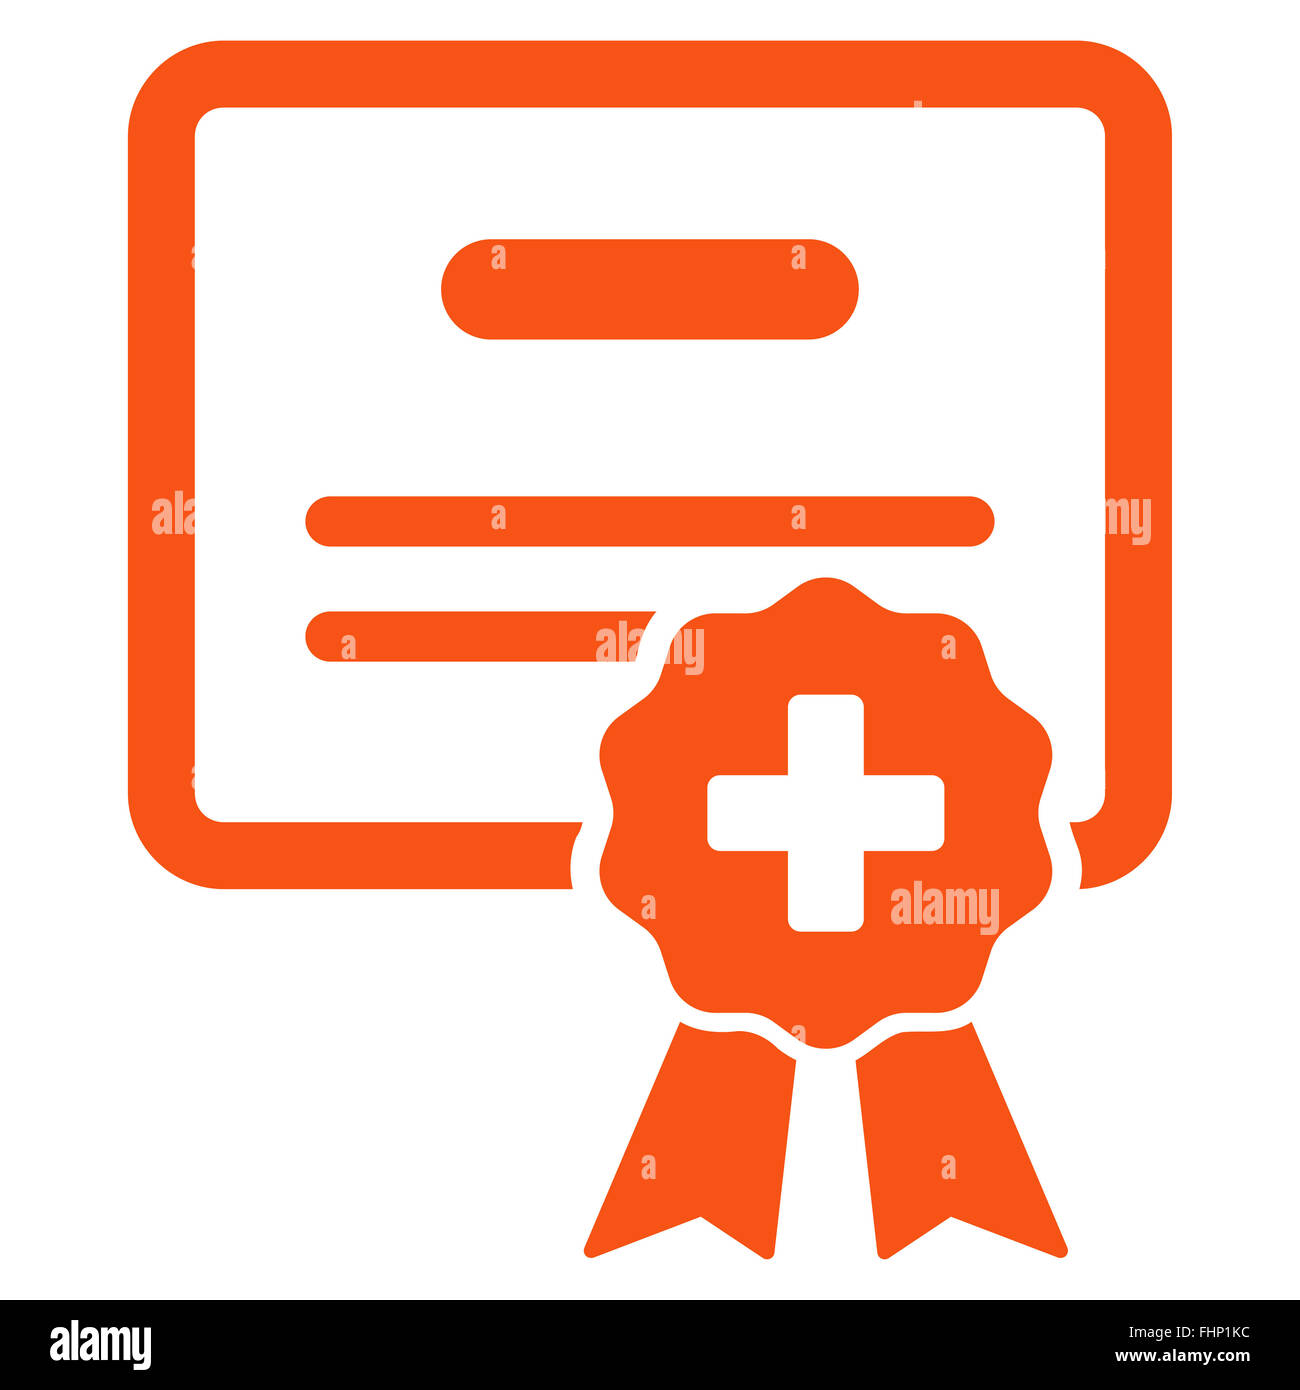 Medical Certification Icon Stock Photo Royalty Free Image 96985264